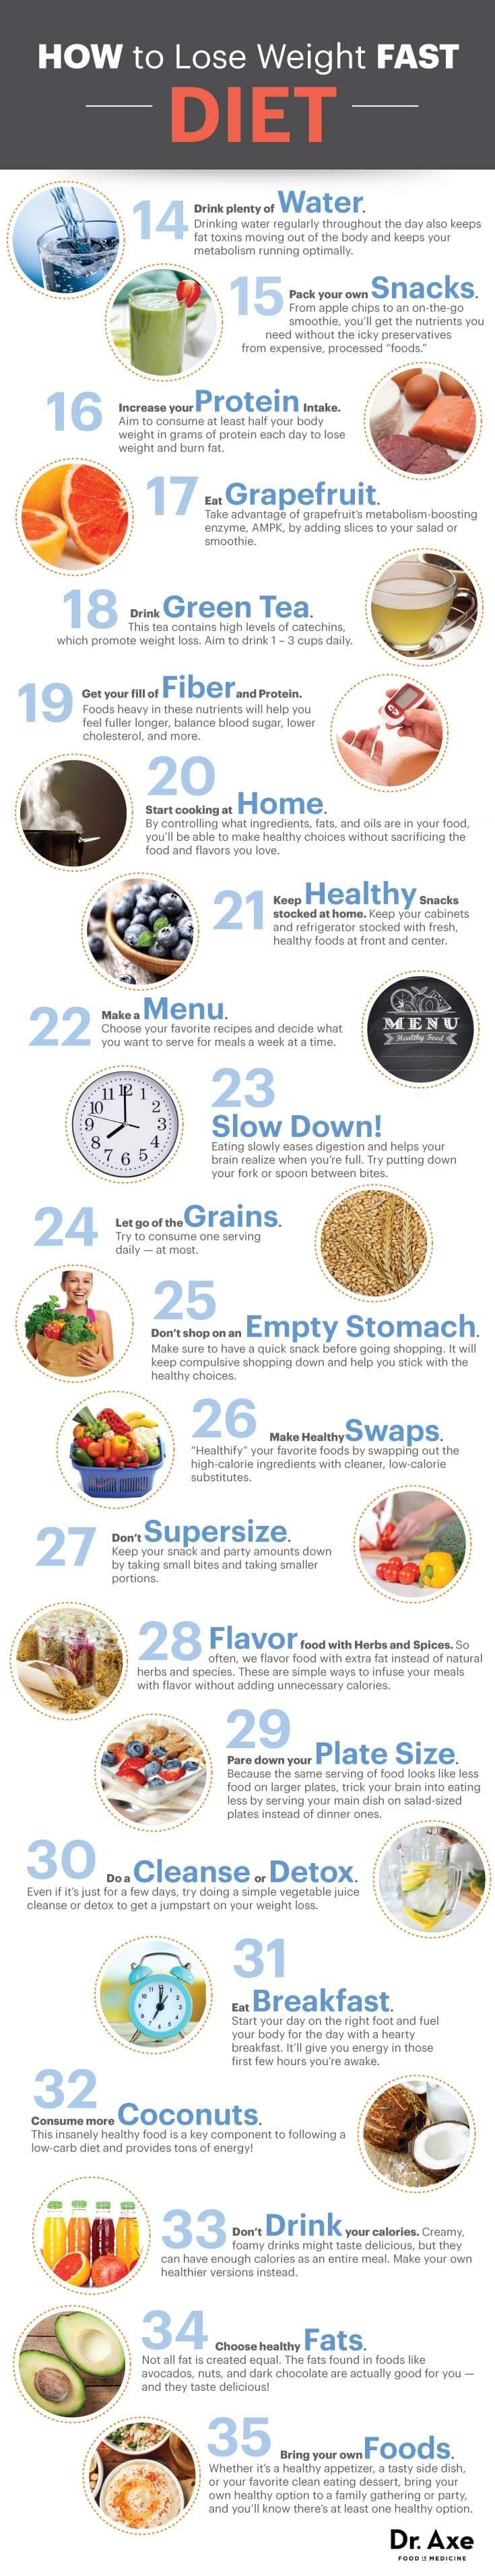 49 Secrets on How to Lose Weight Fast